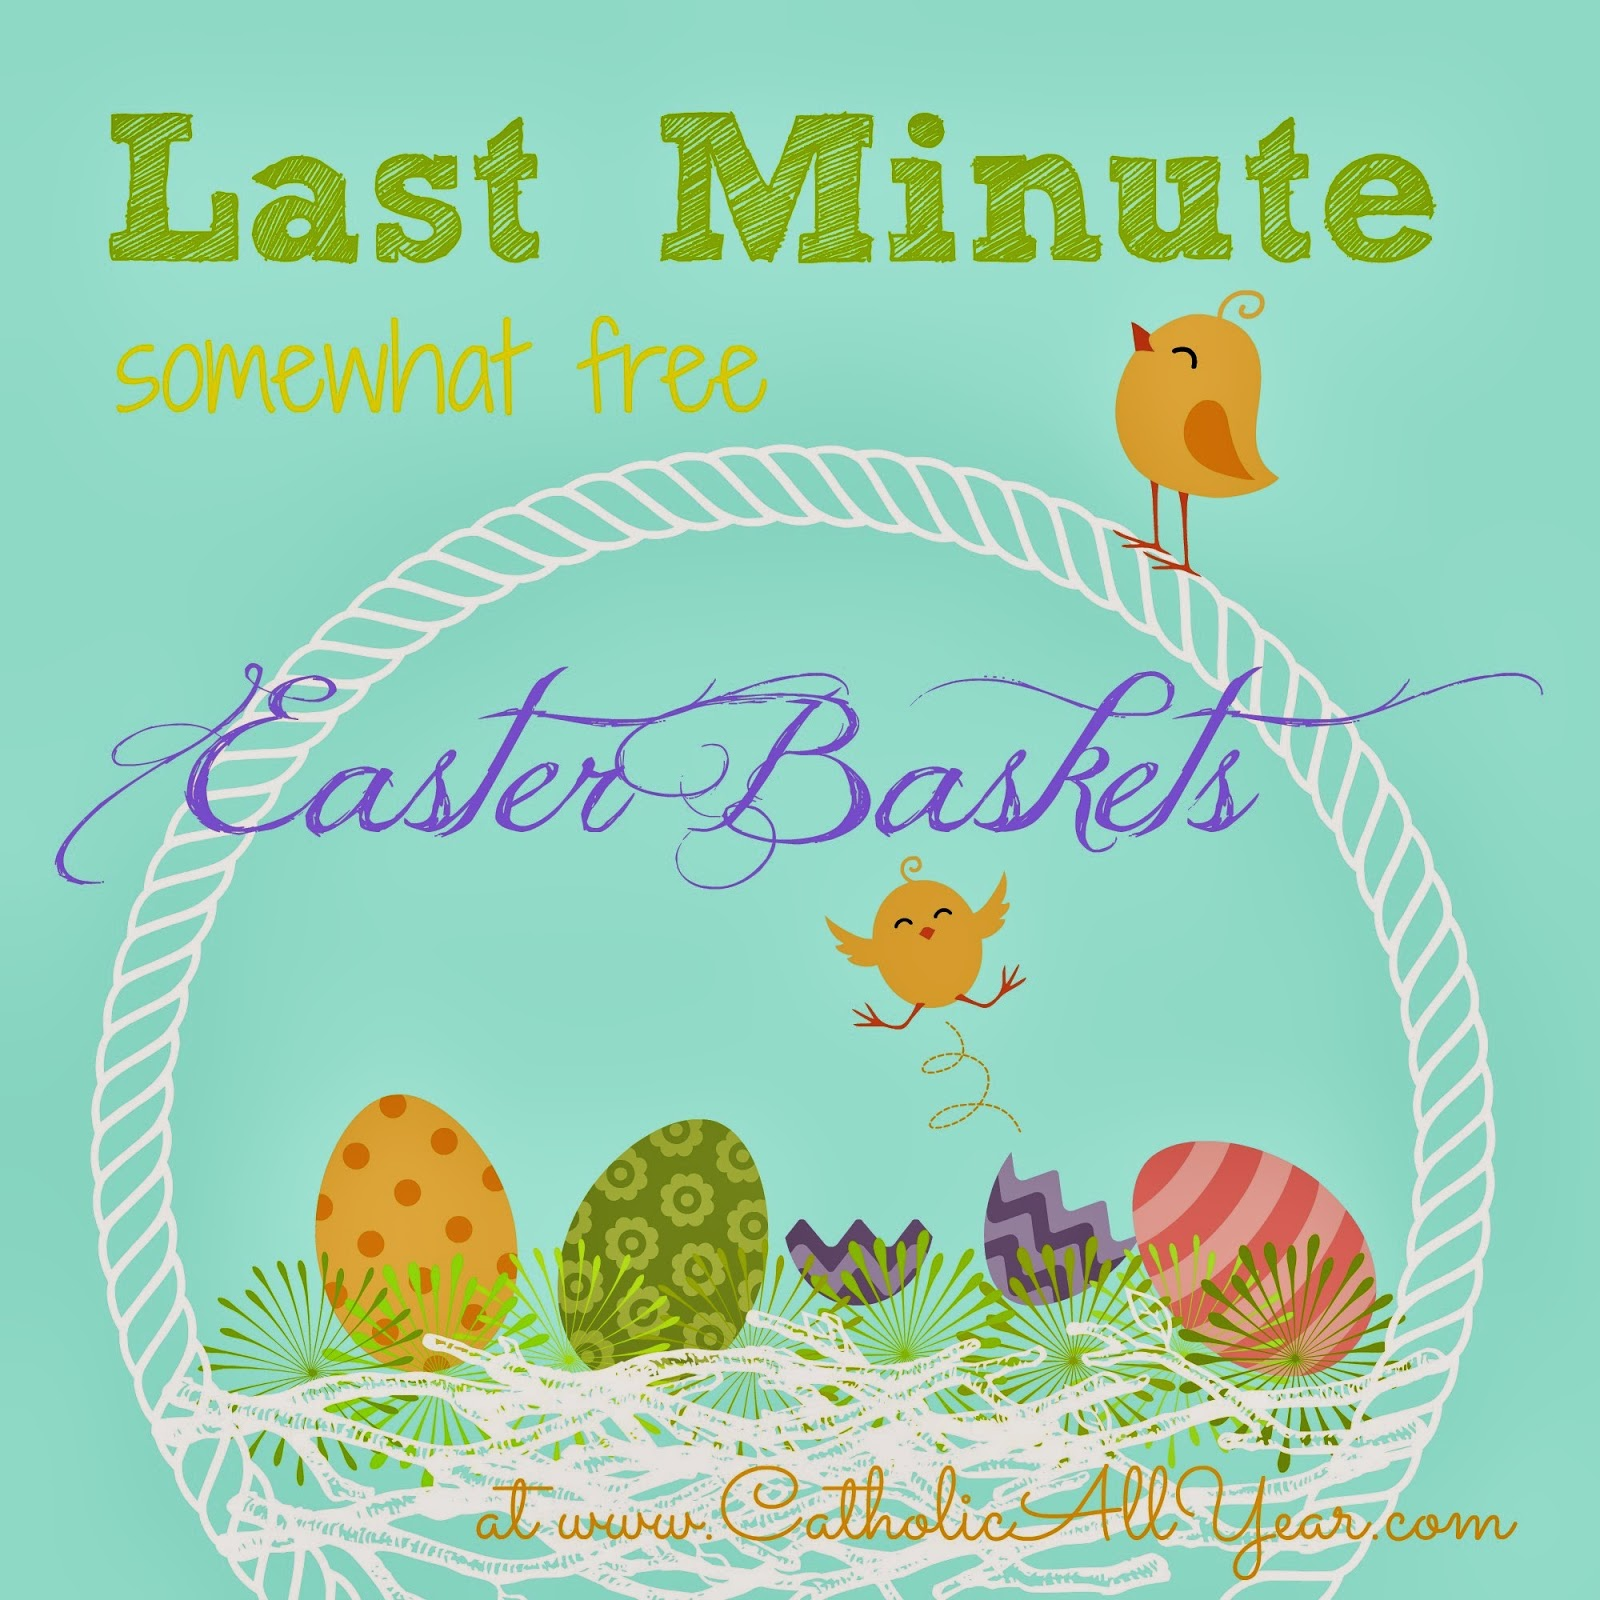 Catholic all year last minute somewhat free easter baskets before you rush out the door to the dollar store to put together an easter basket here are a few ideas for lovely and edifying easter gifts that you can negle Choice Image